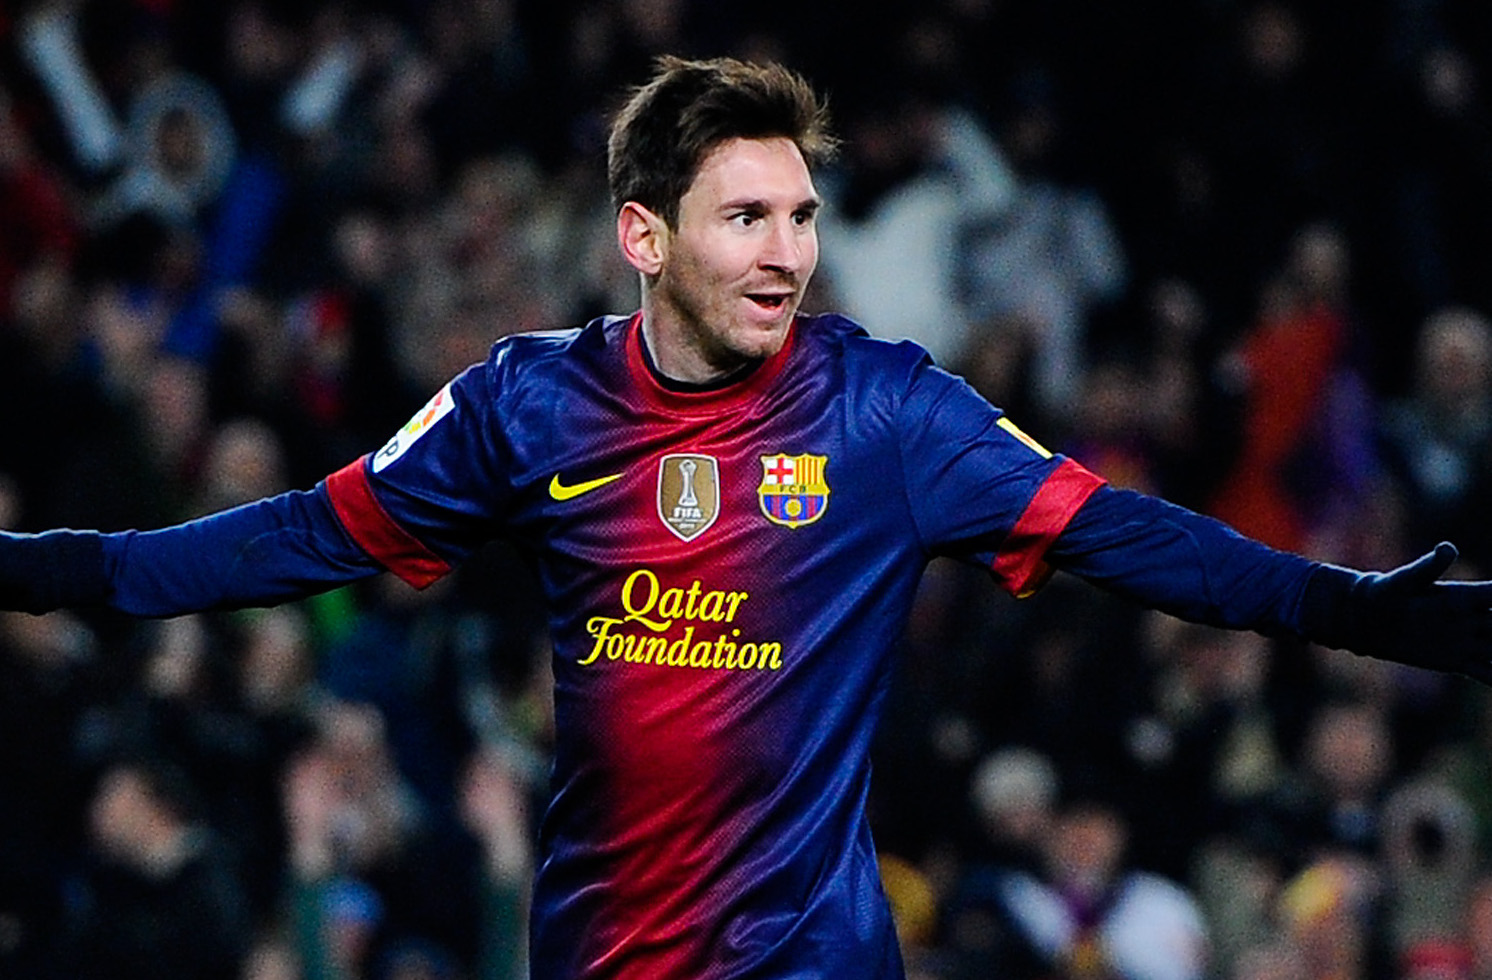 LioneL MessI 2013 Sports Wallpapers Events Wallpapers Fashion 1492x980